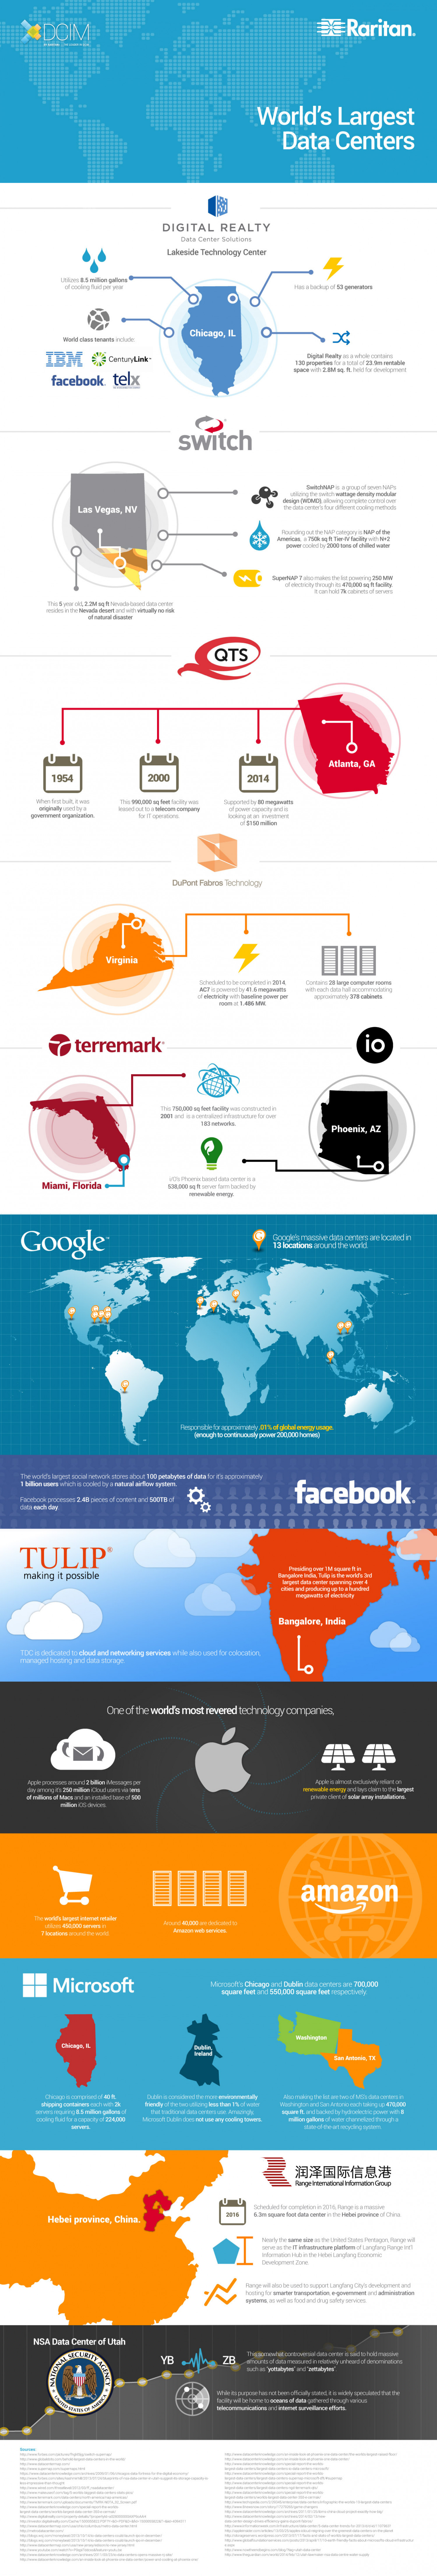 World's Largest Data Centers Infographic